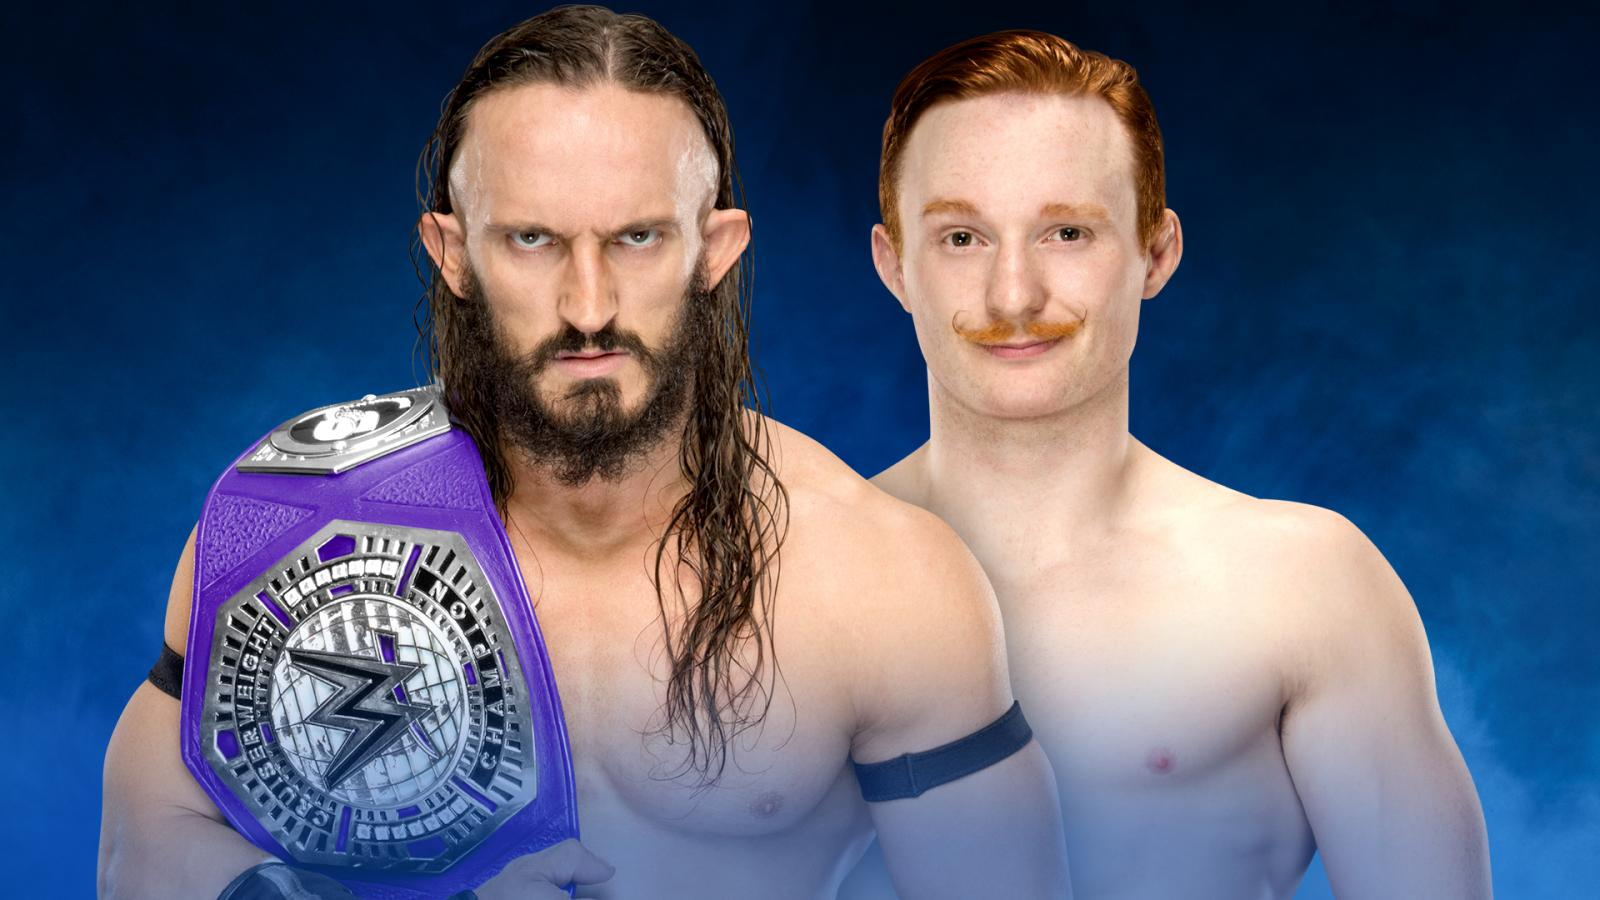 Cruiserweight Title match set for Fastlane, WWE 2K17 now on